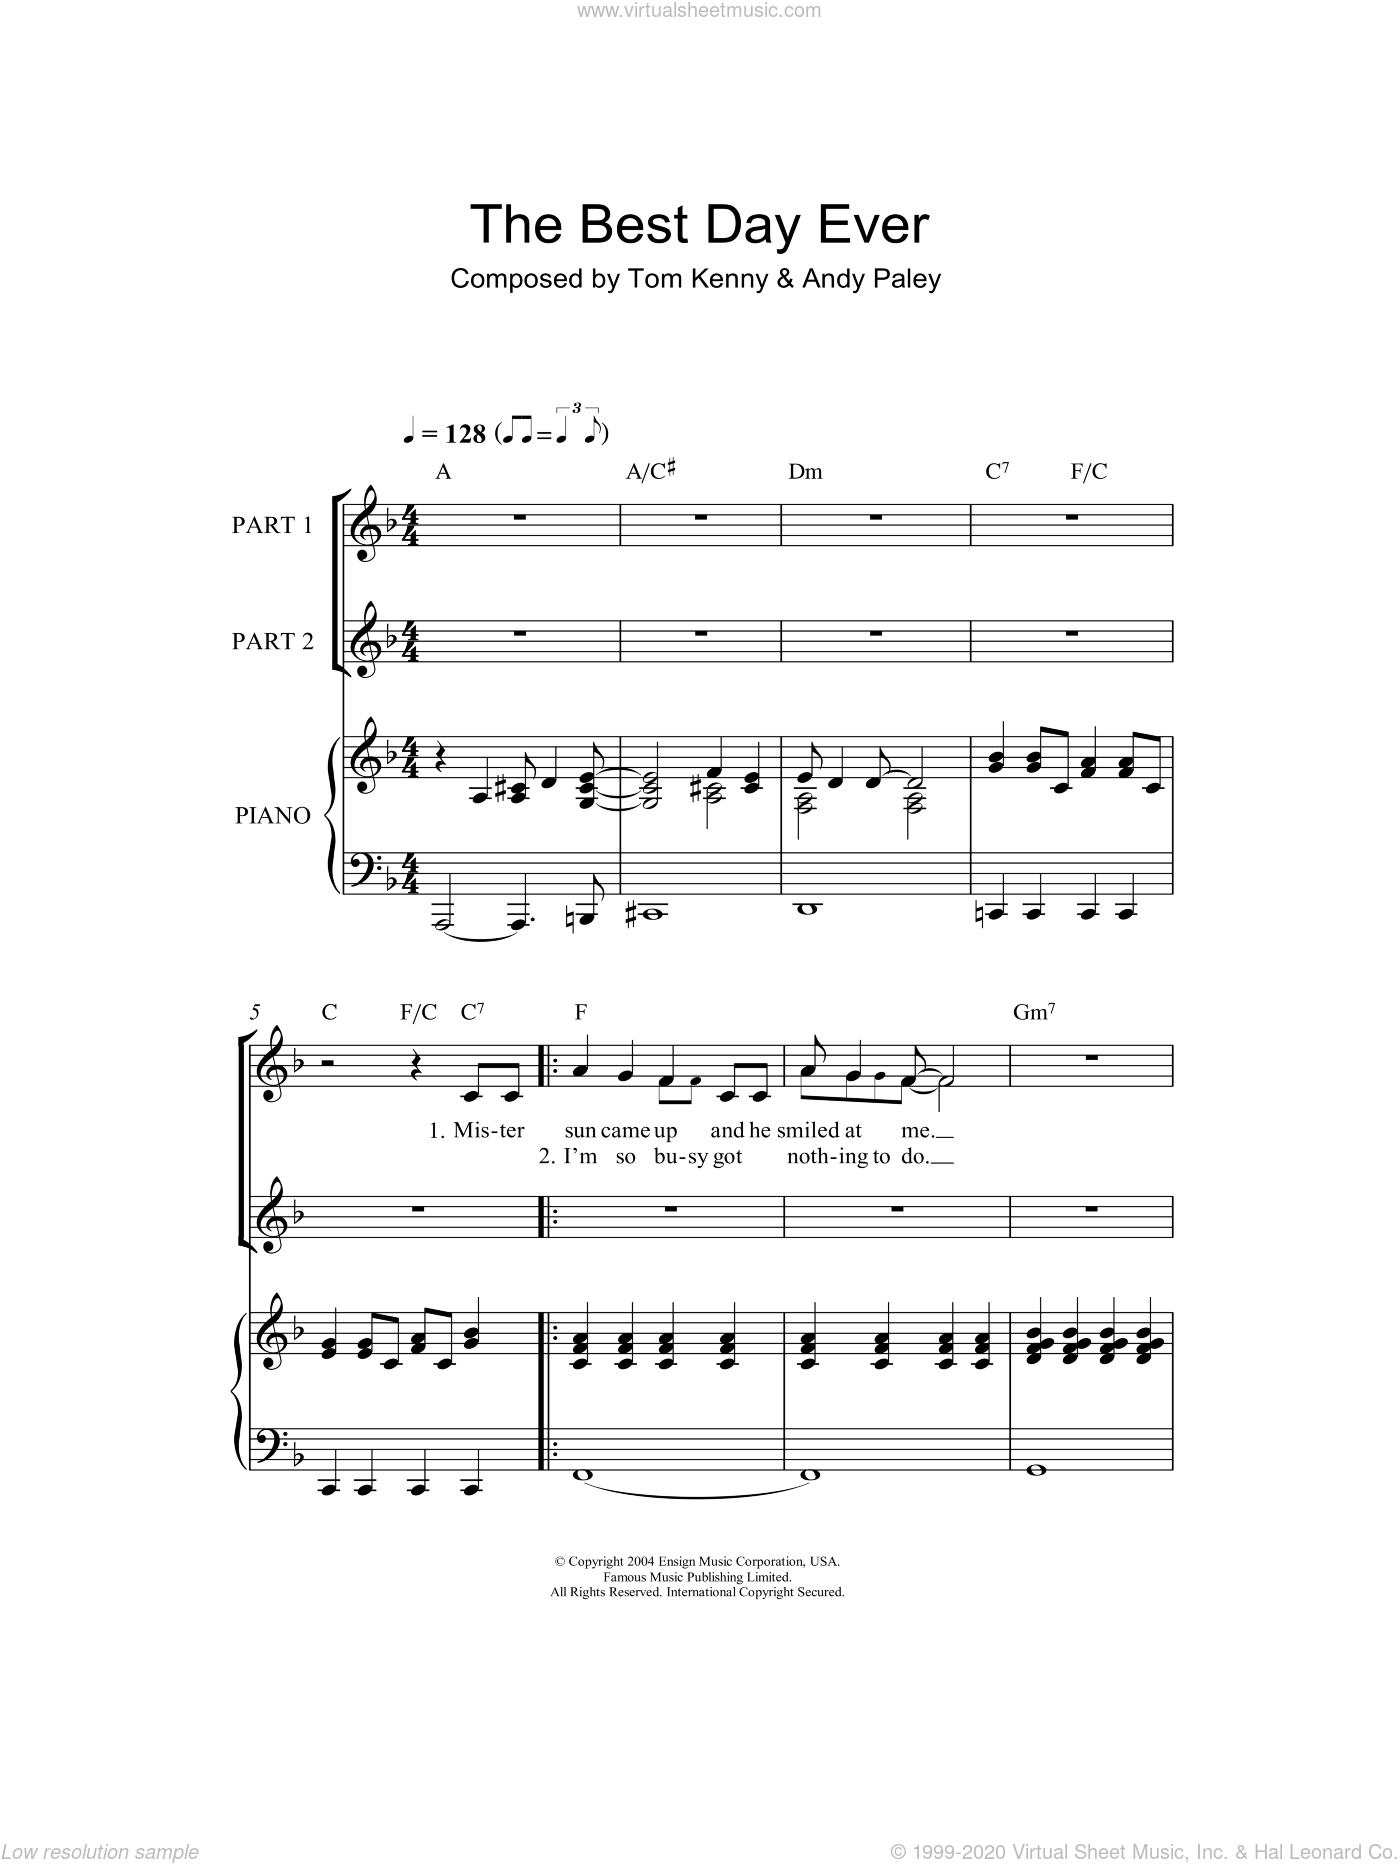 The Best Day Ever sheet music for choir (2-Part) by SpongeBob SquarePants, Andy Paley and Tom Kenny, intermediate duet